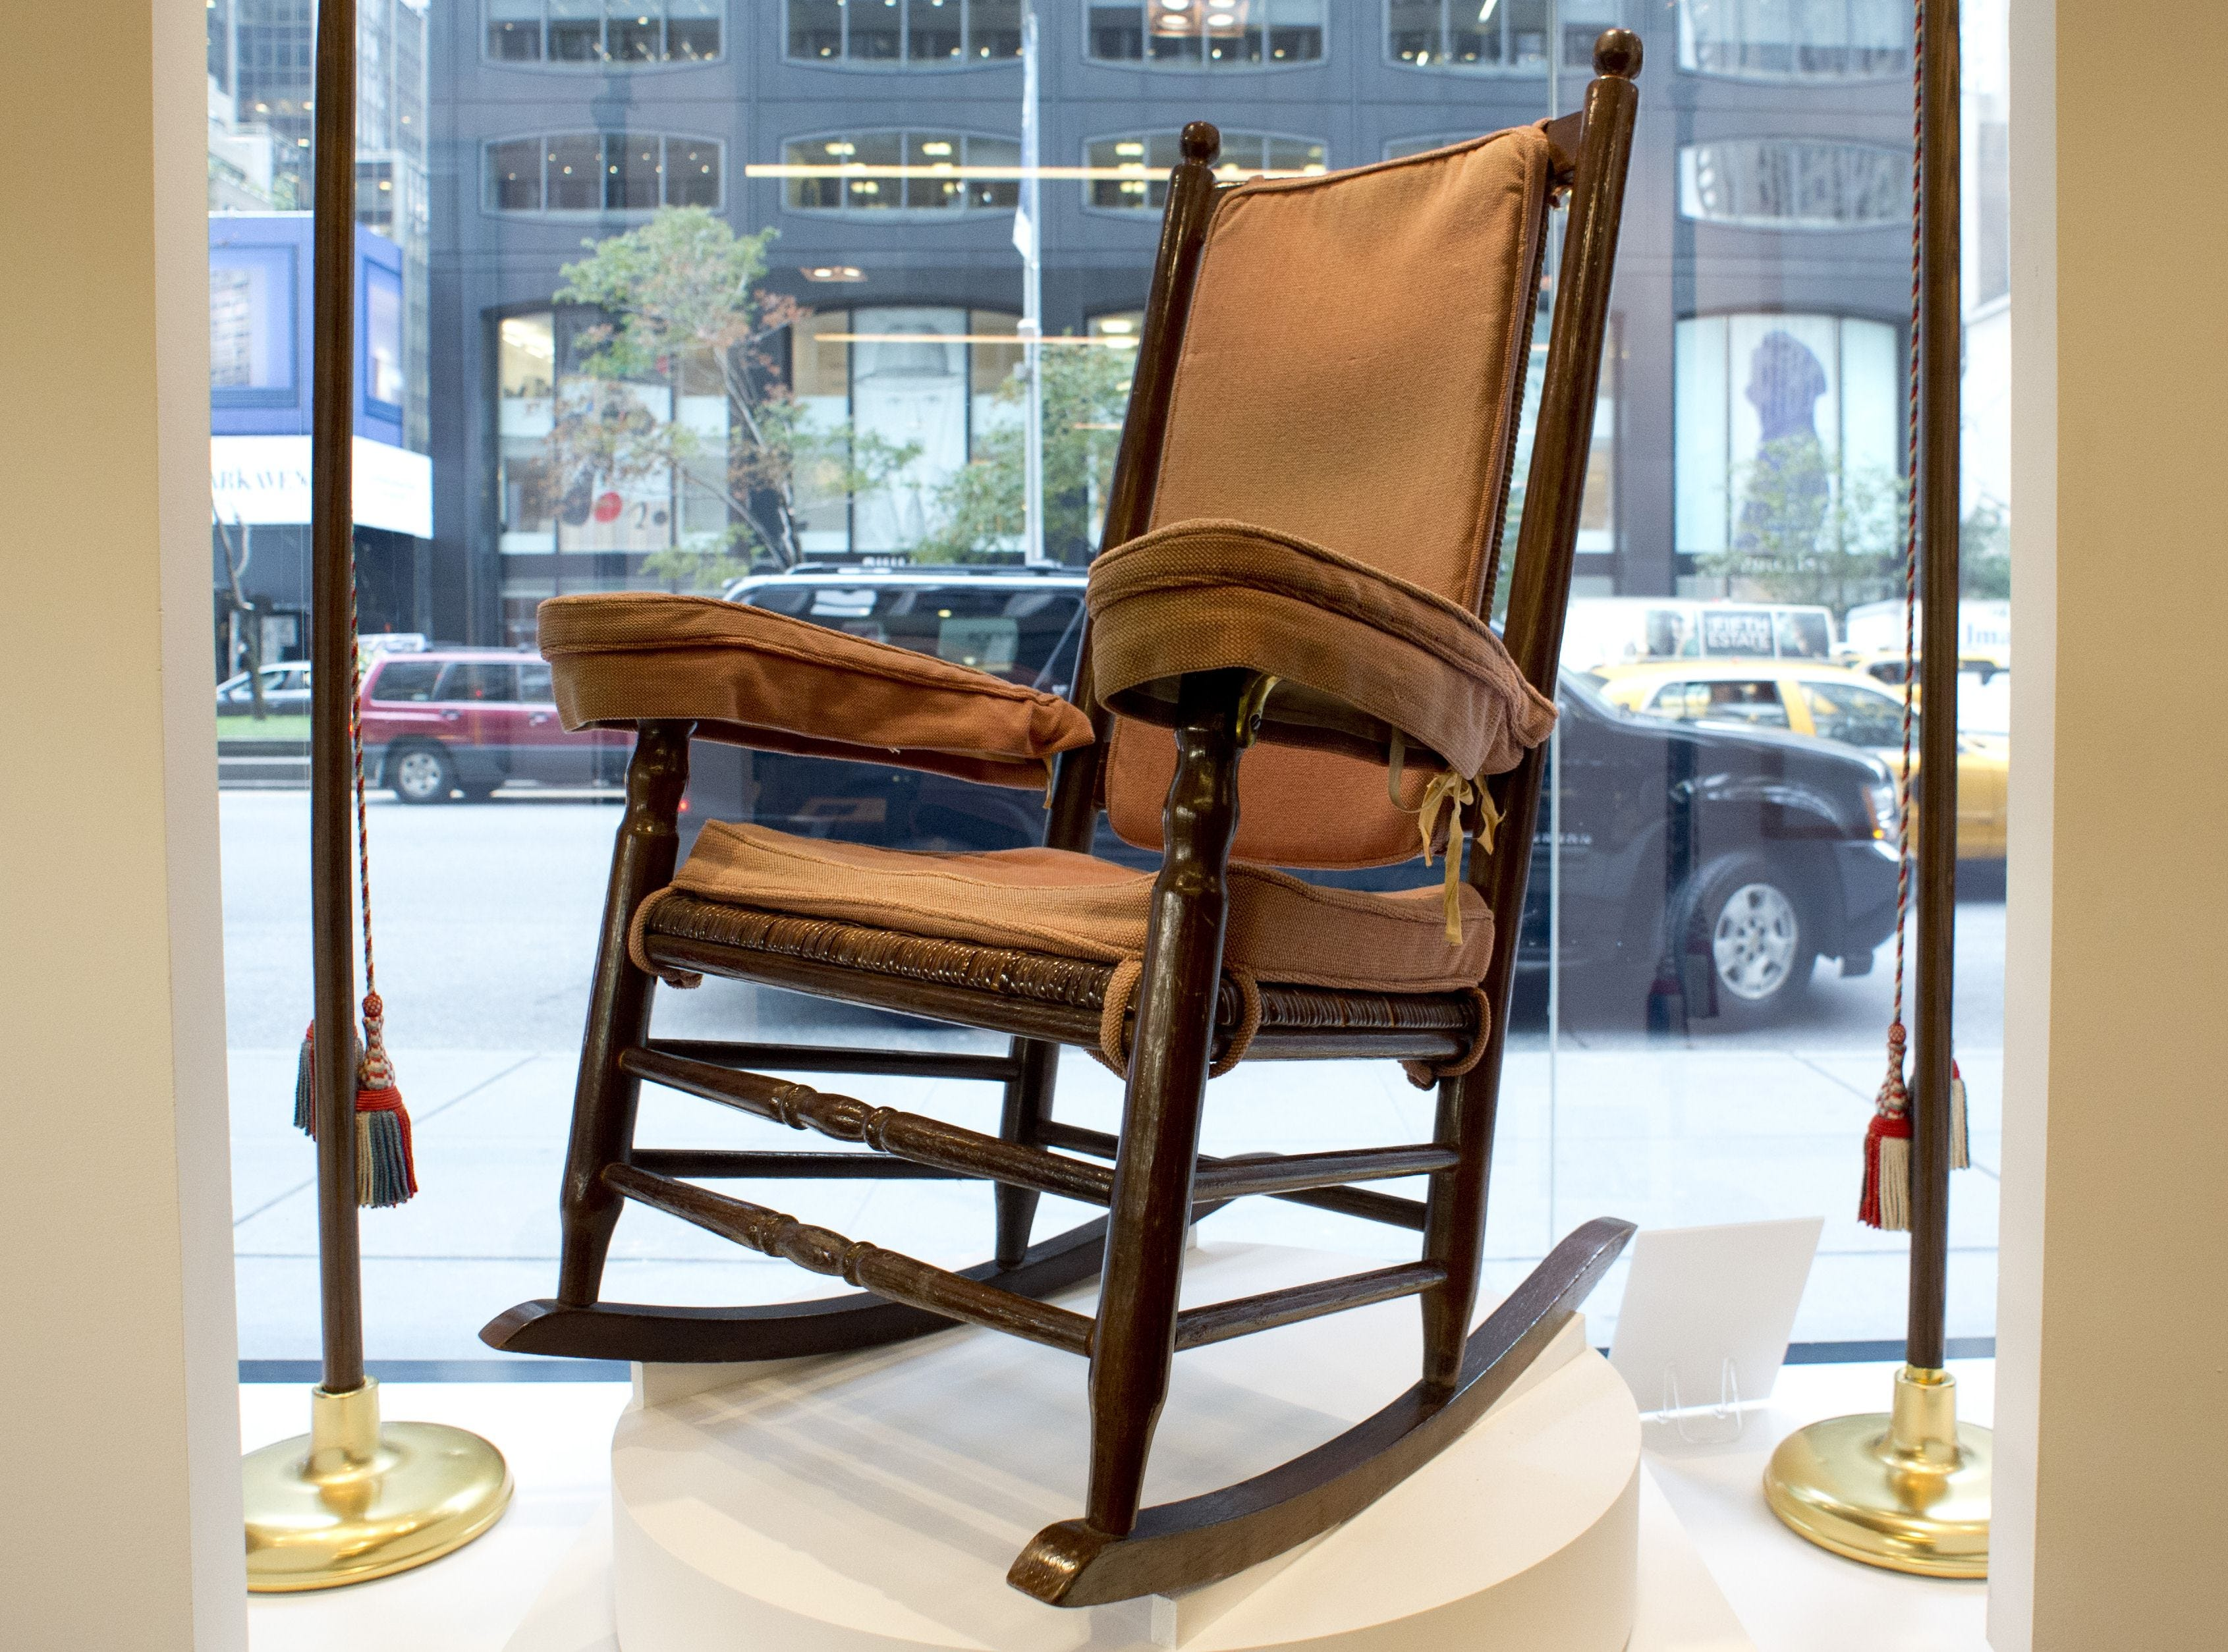 & JFK rocking chair other items up for auction